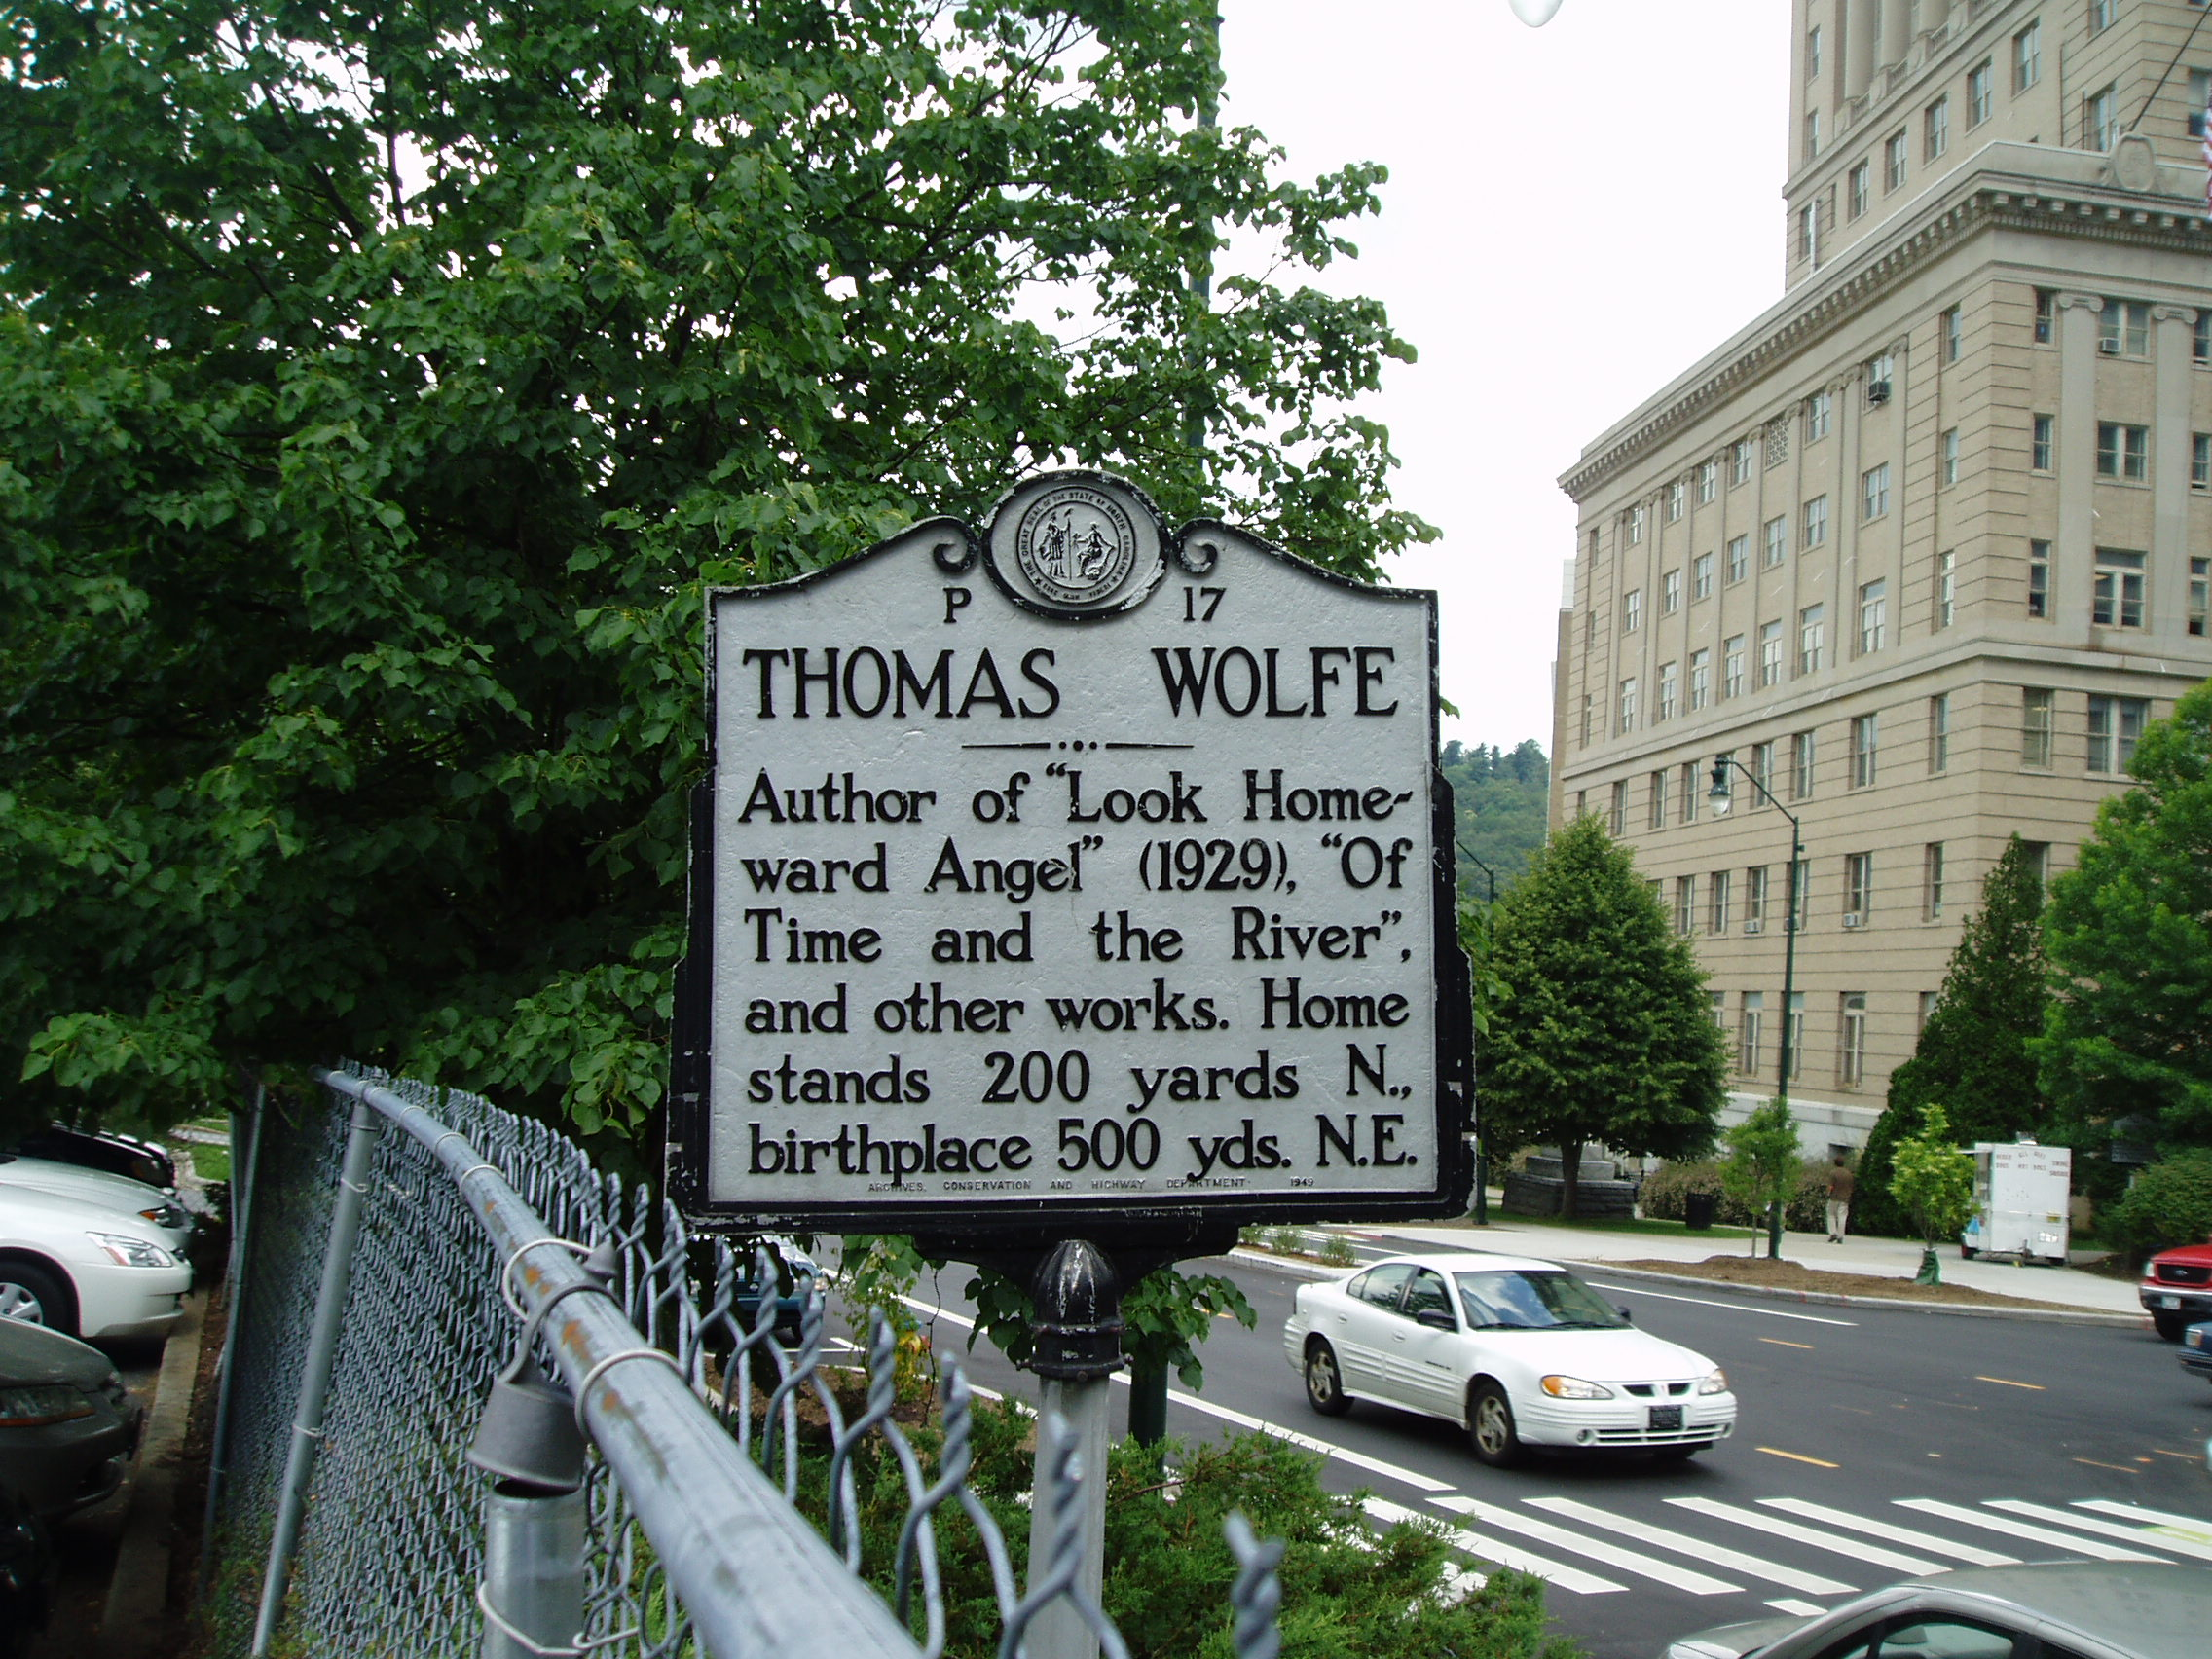 Highway Marker for Thomas Wolfe